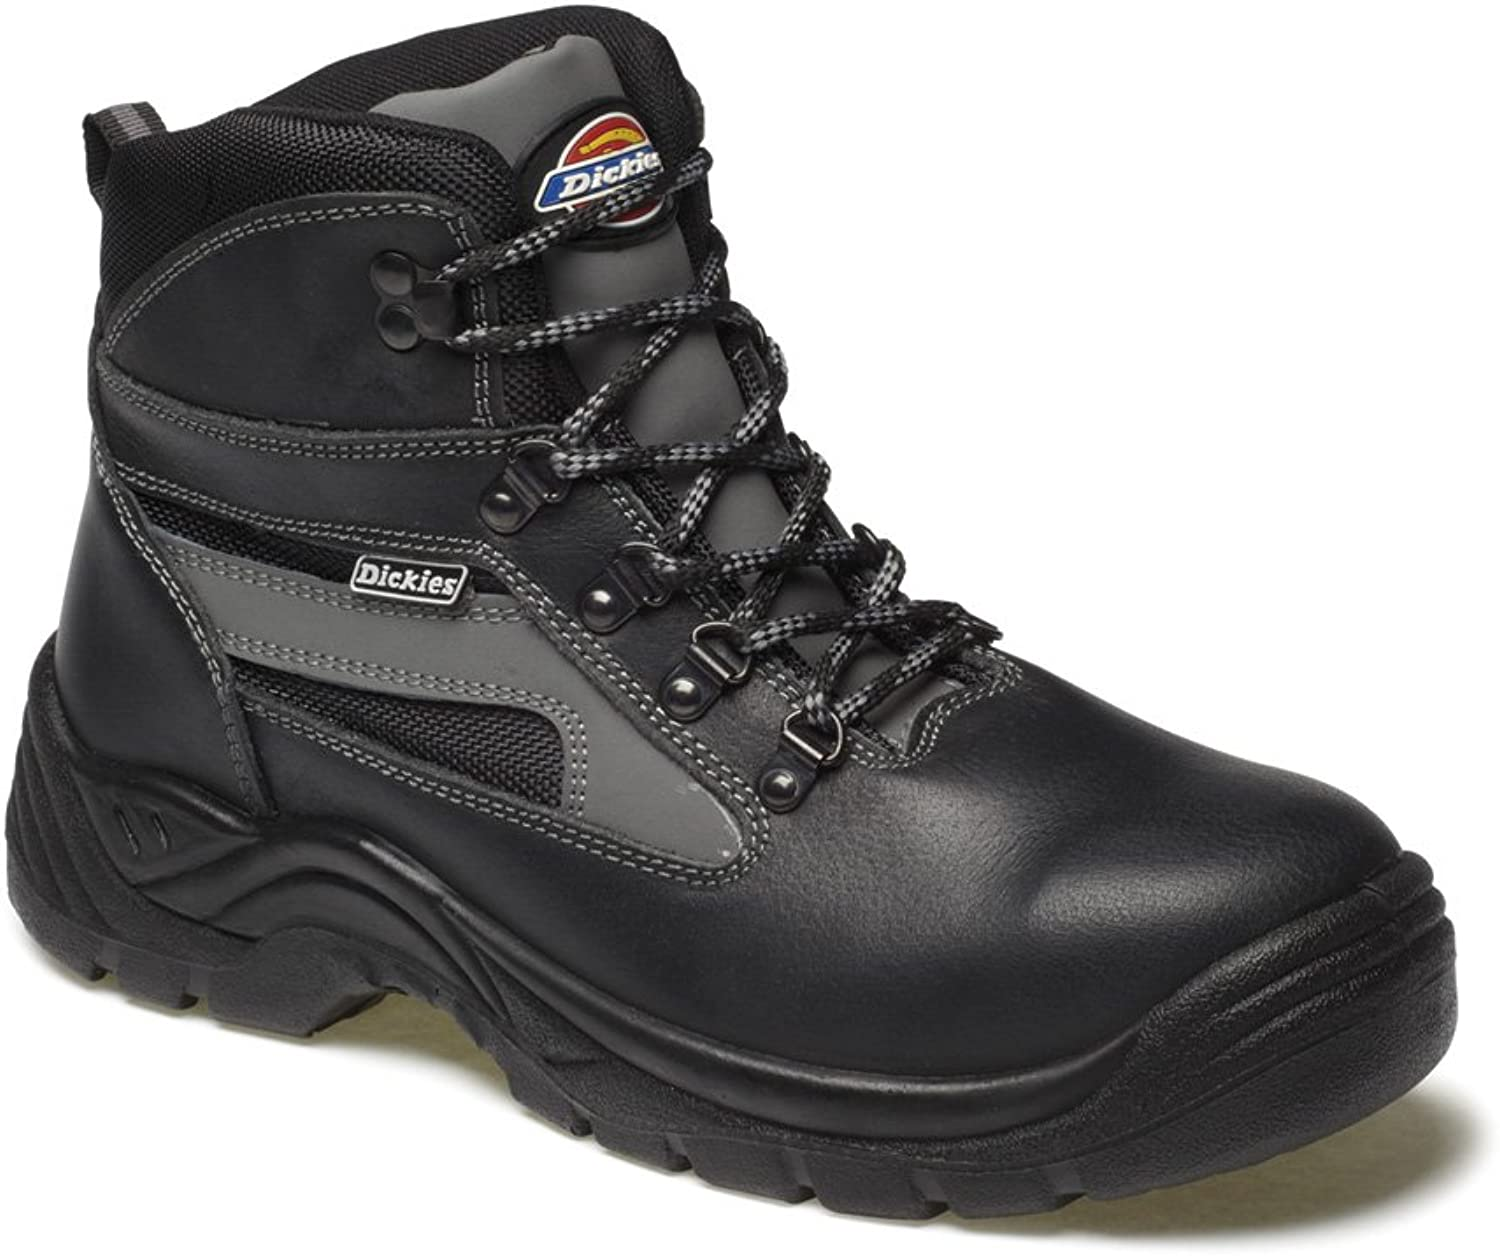 Dickies Severn Super Safety Boots.